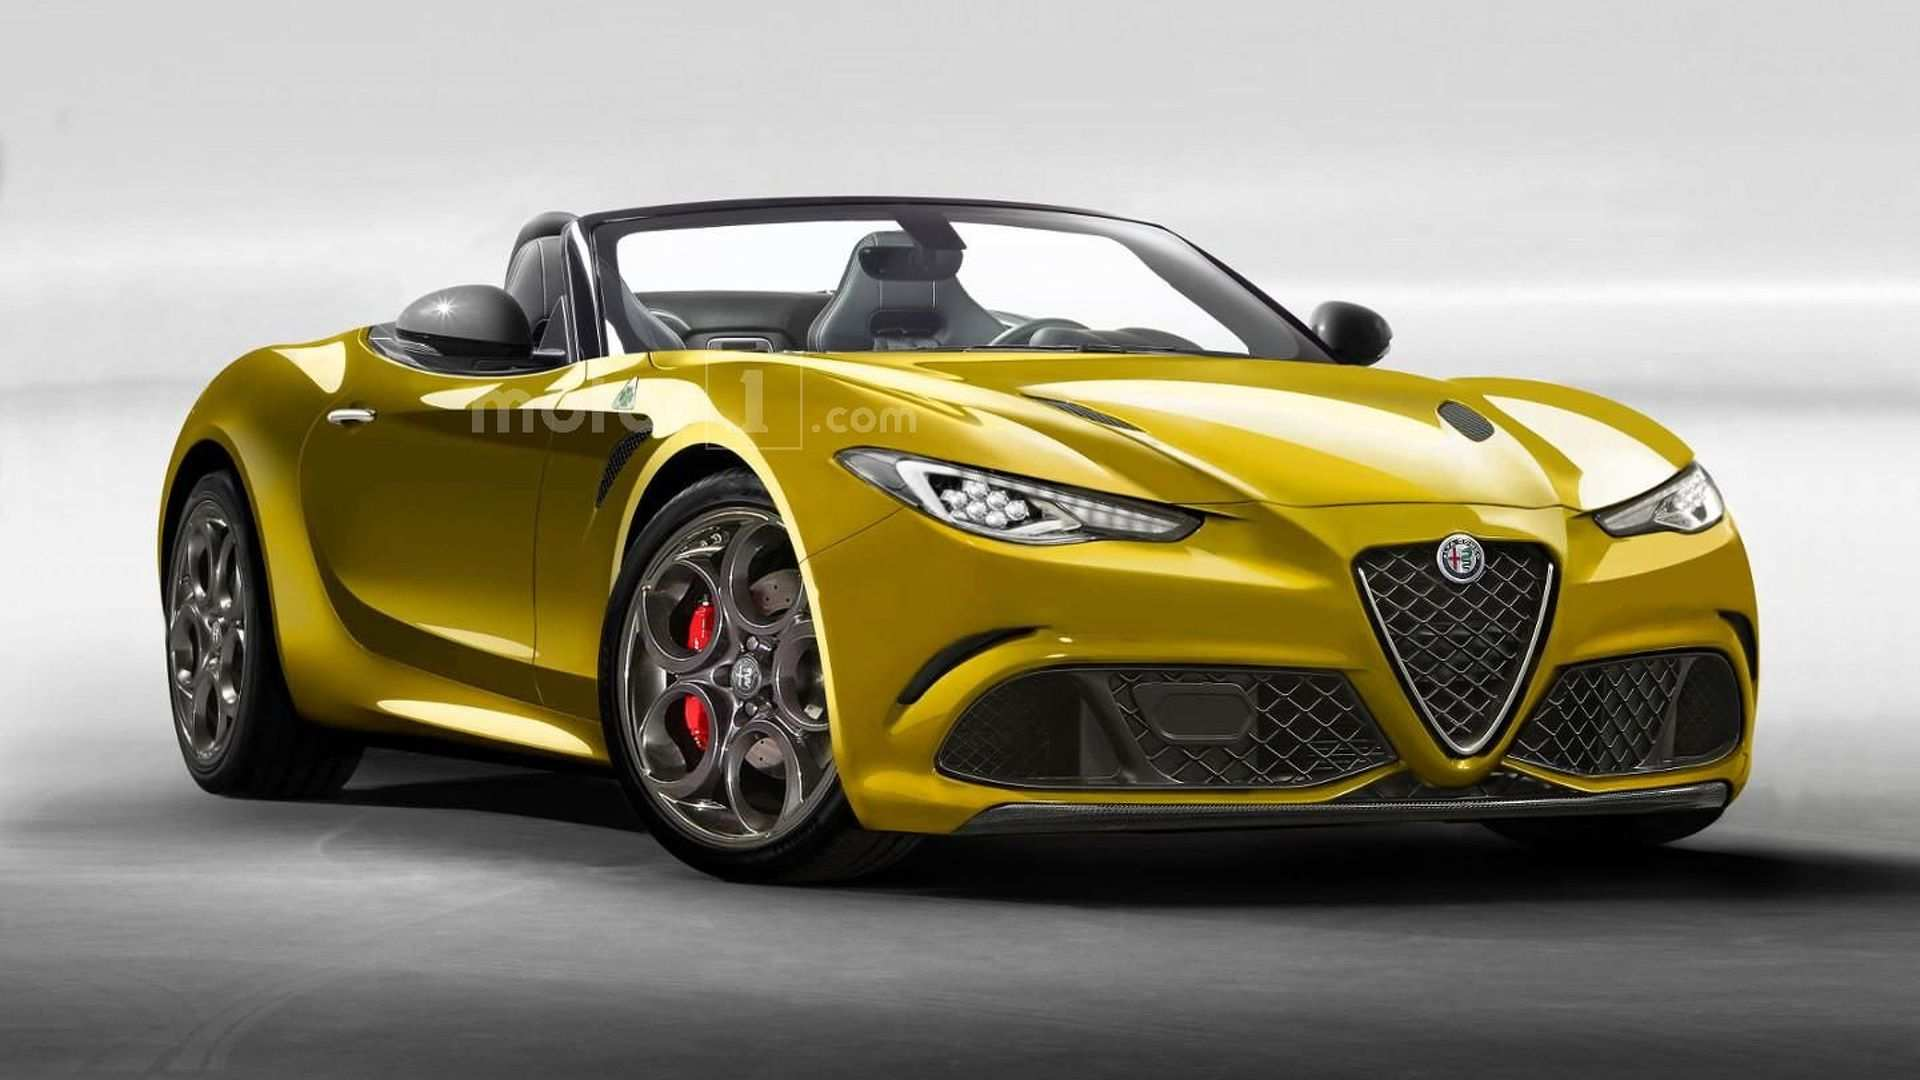 47 Best Review 2020 Alfa Romeo Spider Prices with 2020 Alfa Romeo Spider